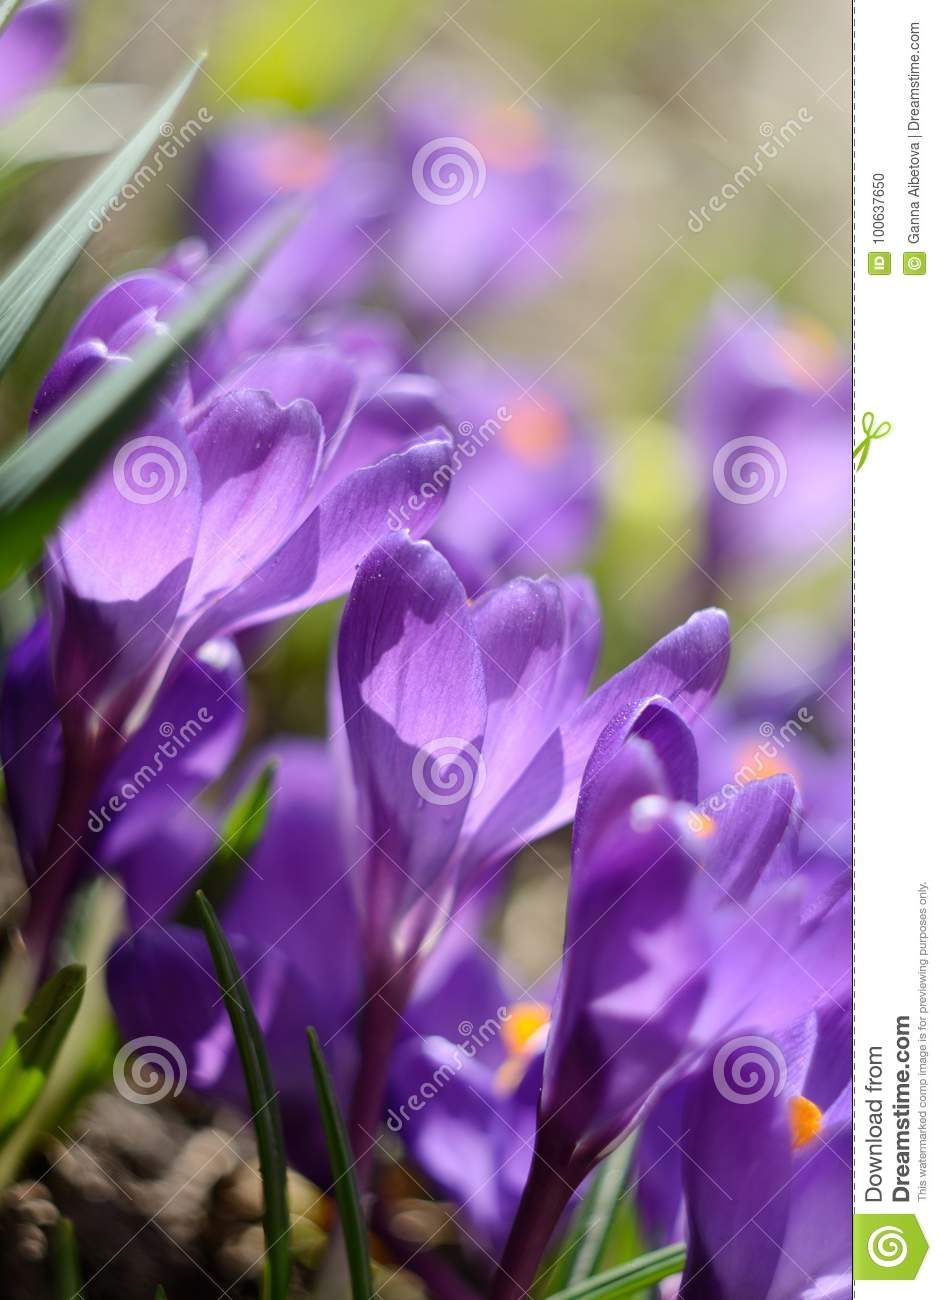 Beautiful first spring flowers crocuses bloom under bright sunlight download beautiful first spring flowers crocuses bloom under bright sunlight spring holidays backdrop stock photo mightylinksfo